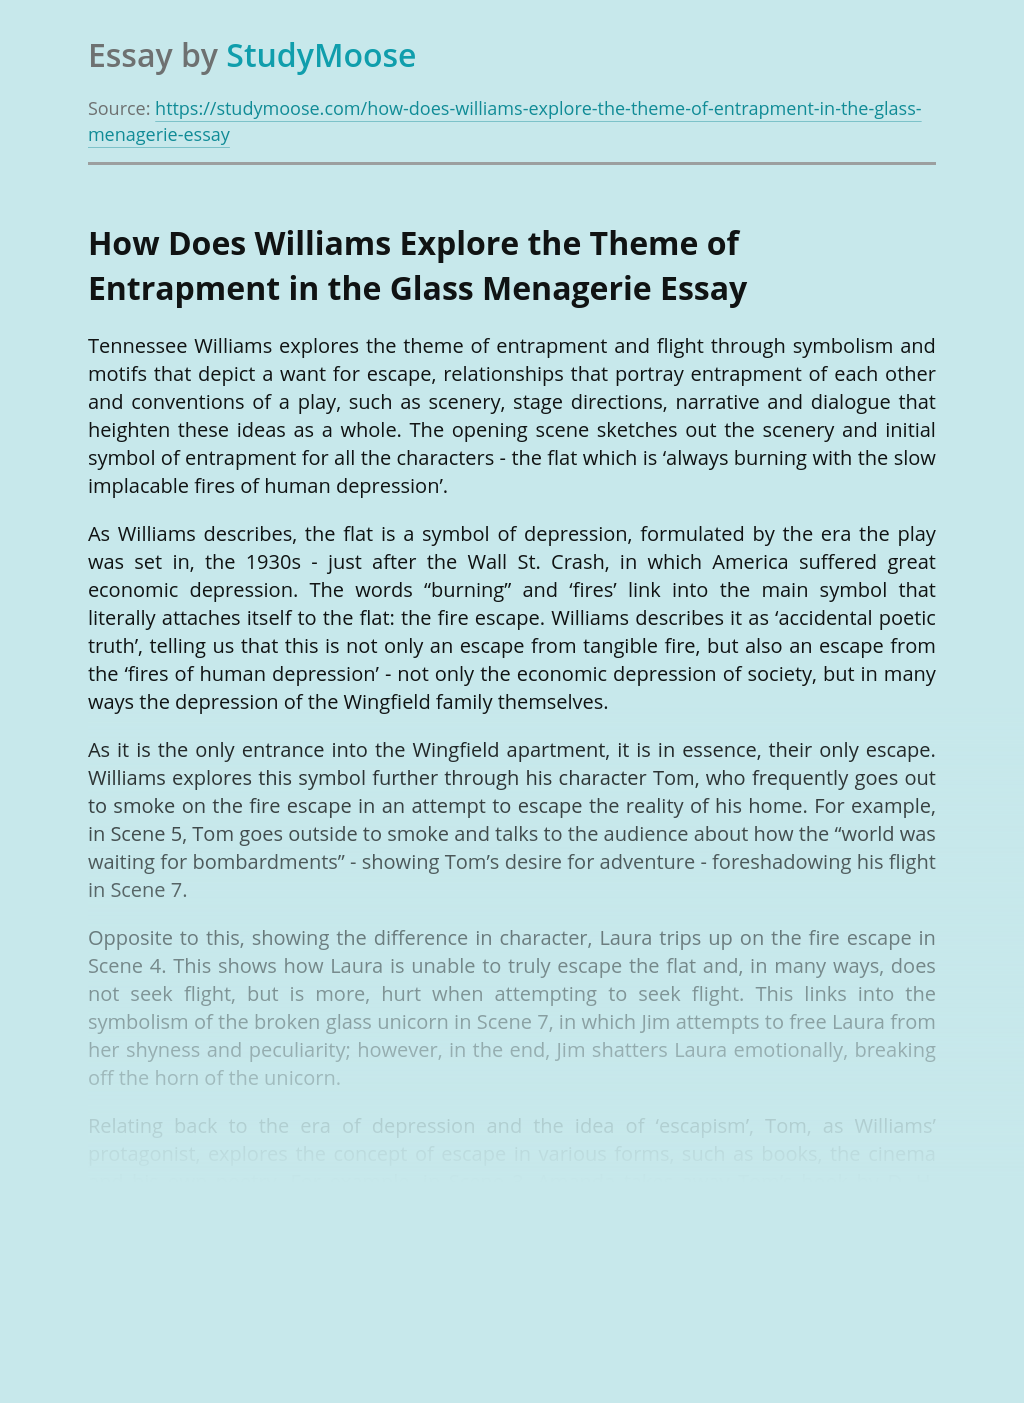 How Does Williams Explore the Theme of Entrapment in the Glass Menagerie